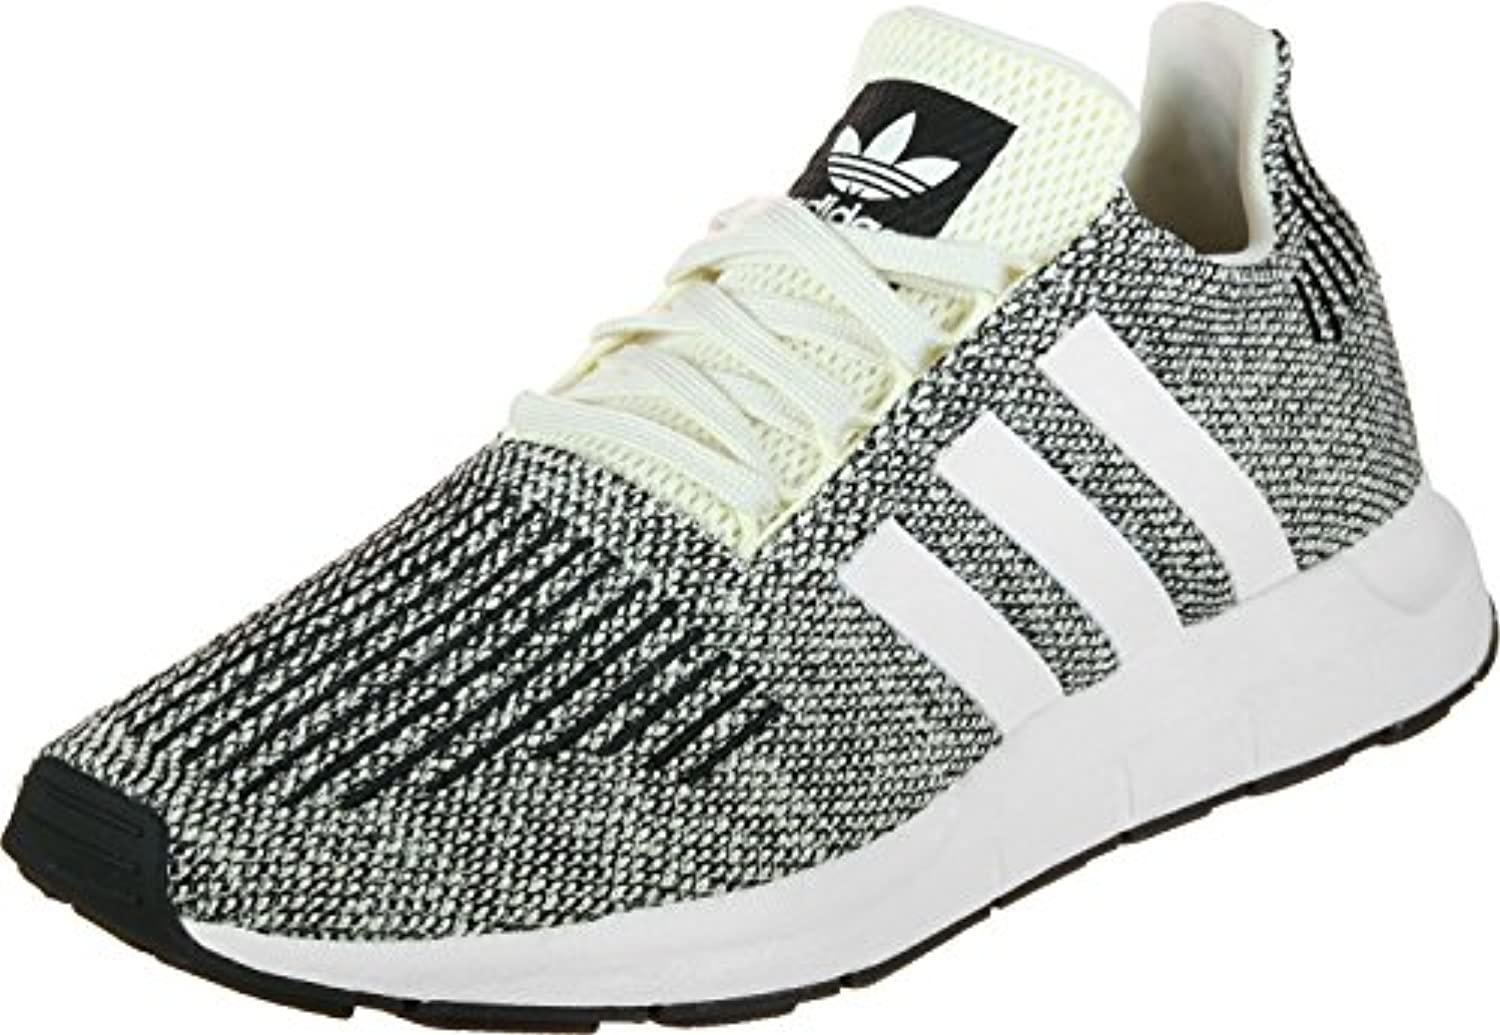 Adidas Swift Run Sneaker 11.5 UK - 46.2/3 EU -